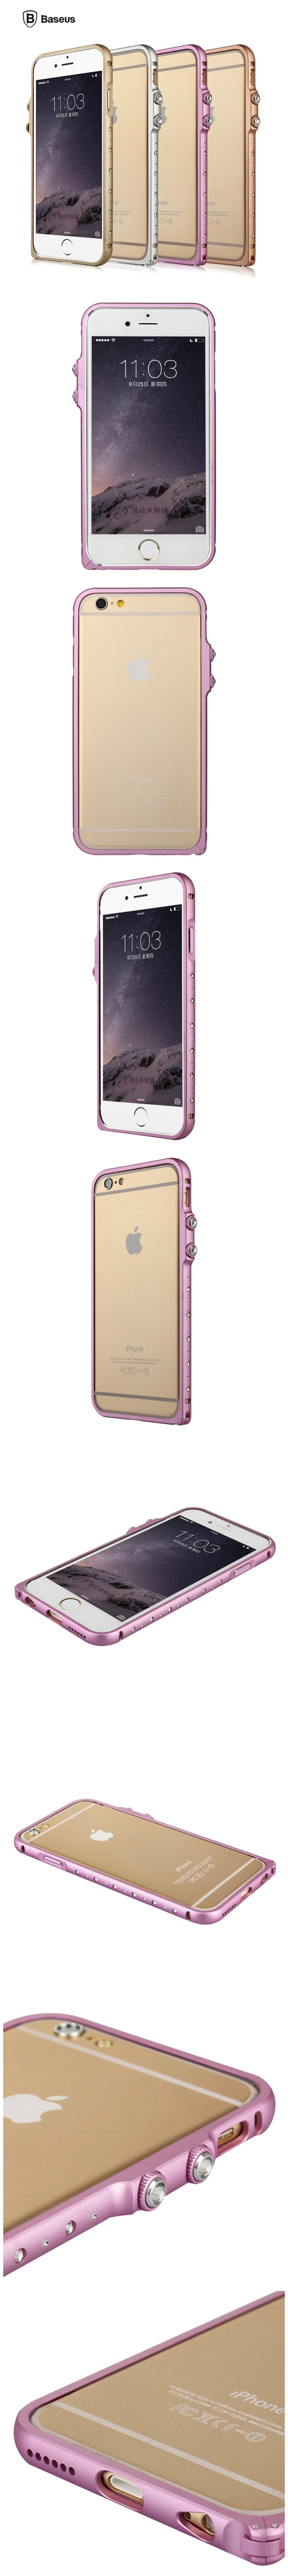 BASEUS Bling Metal Bumper For iPhone 6 6s 6 Plus & 6s Plus